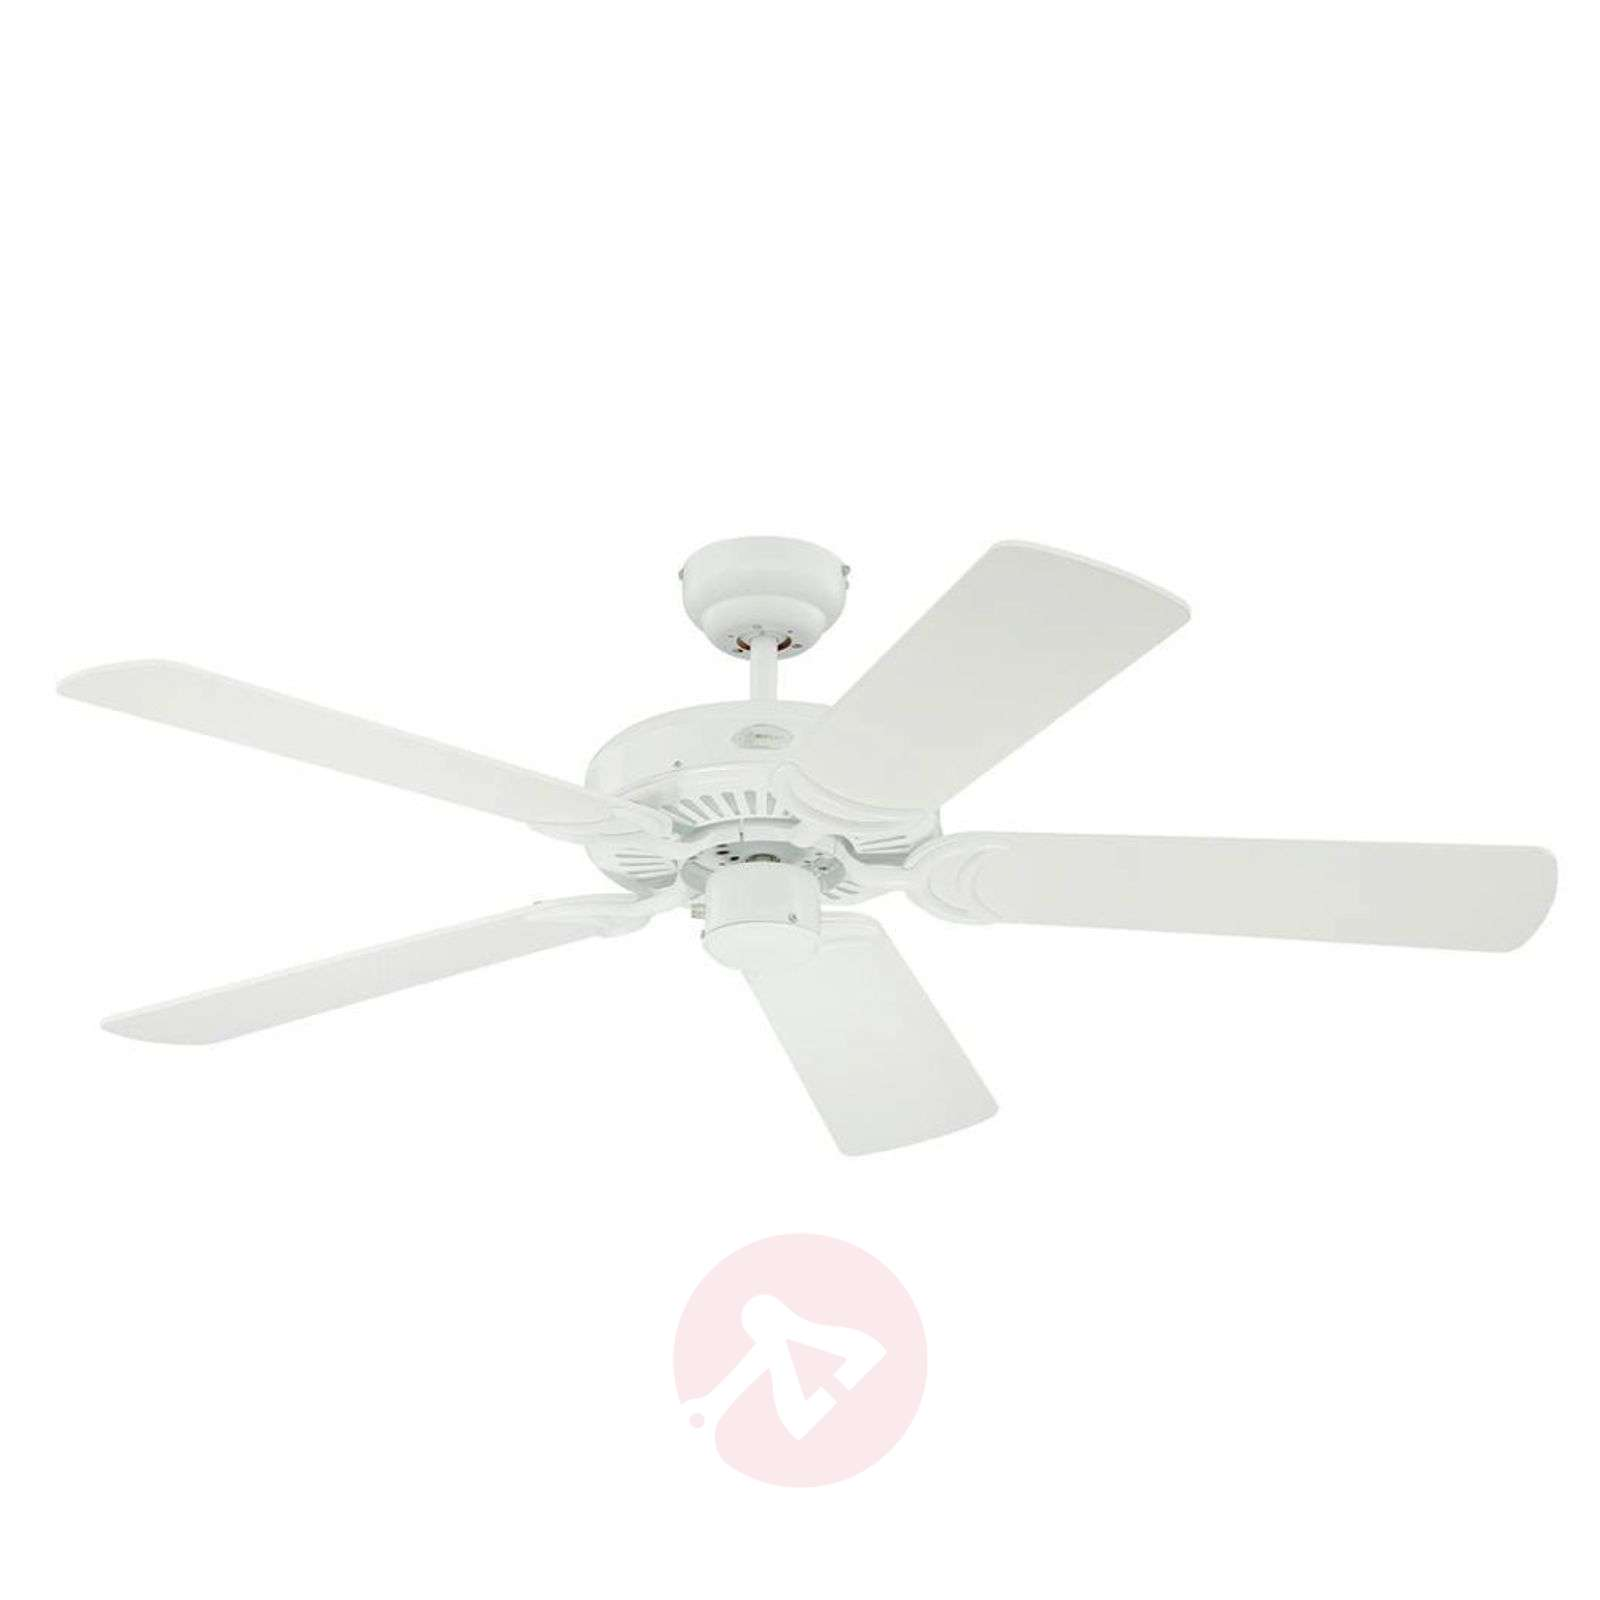 White Monarch ceiling fan-9602267-01